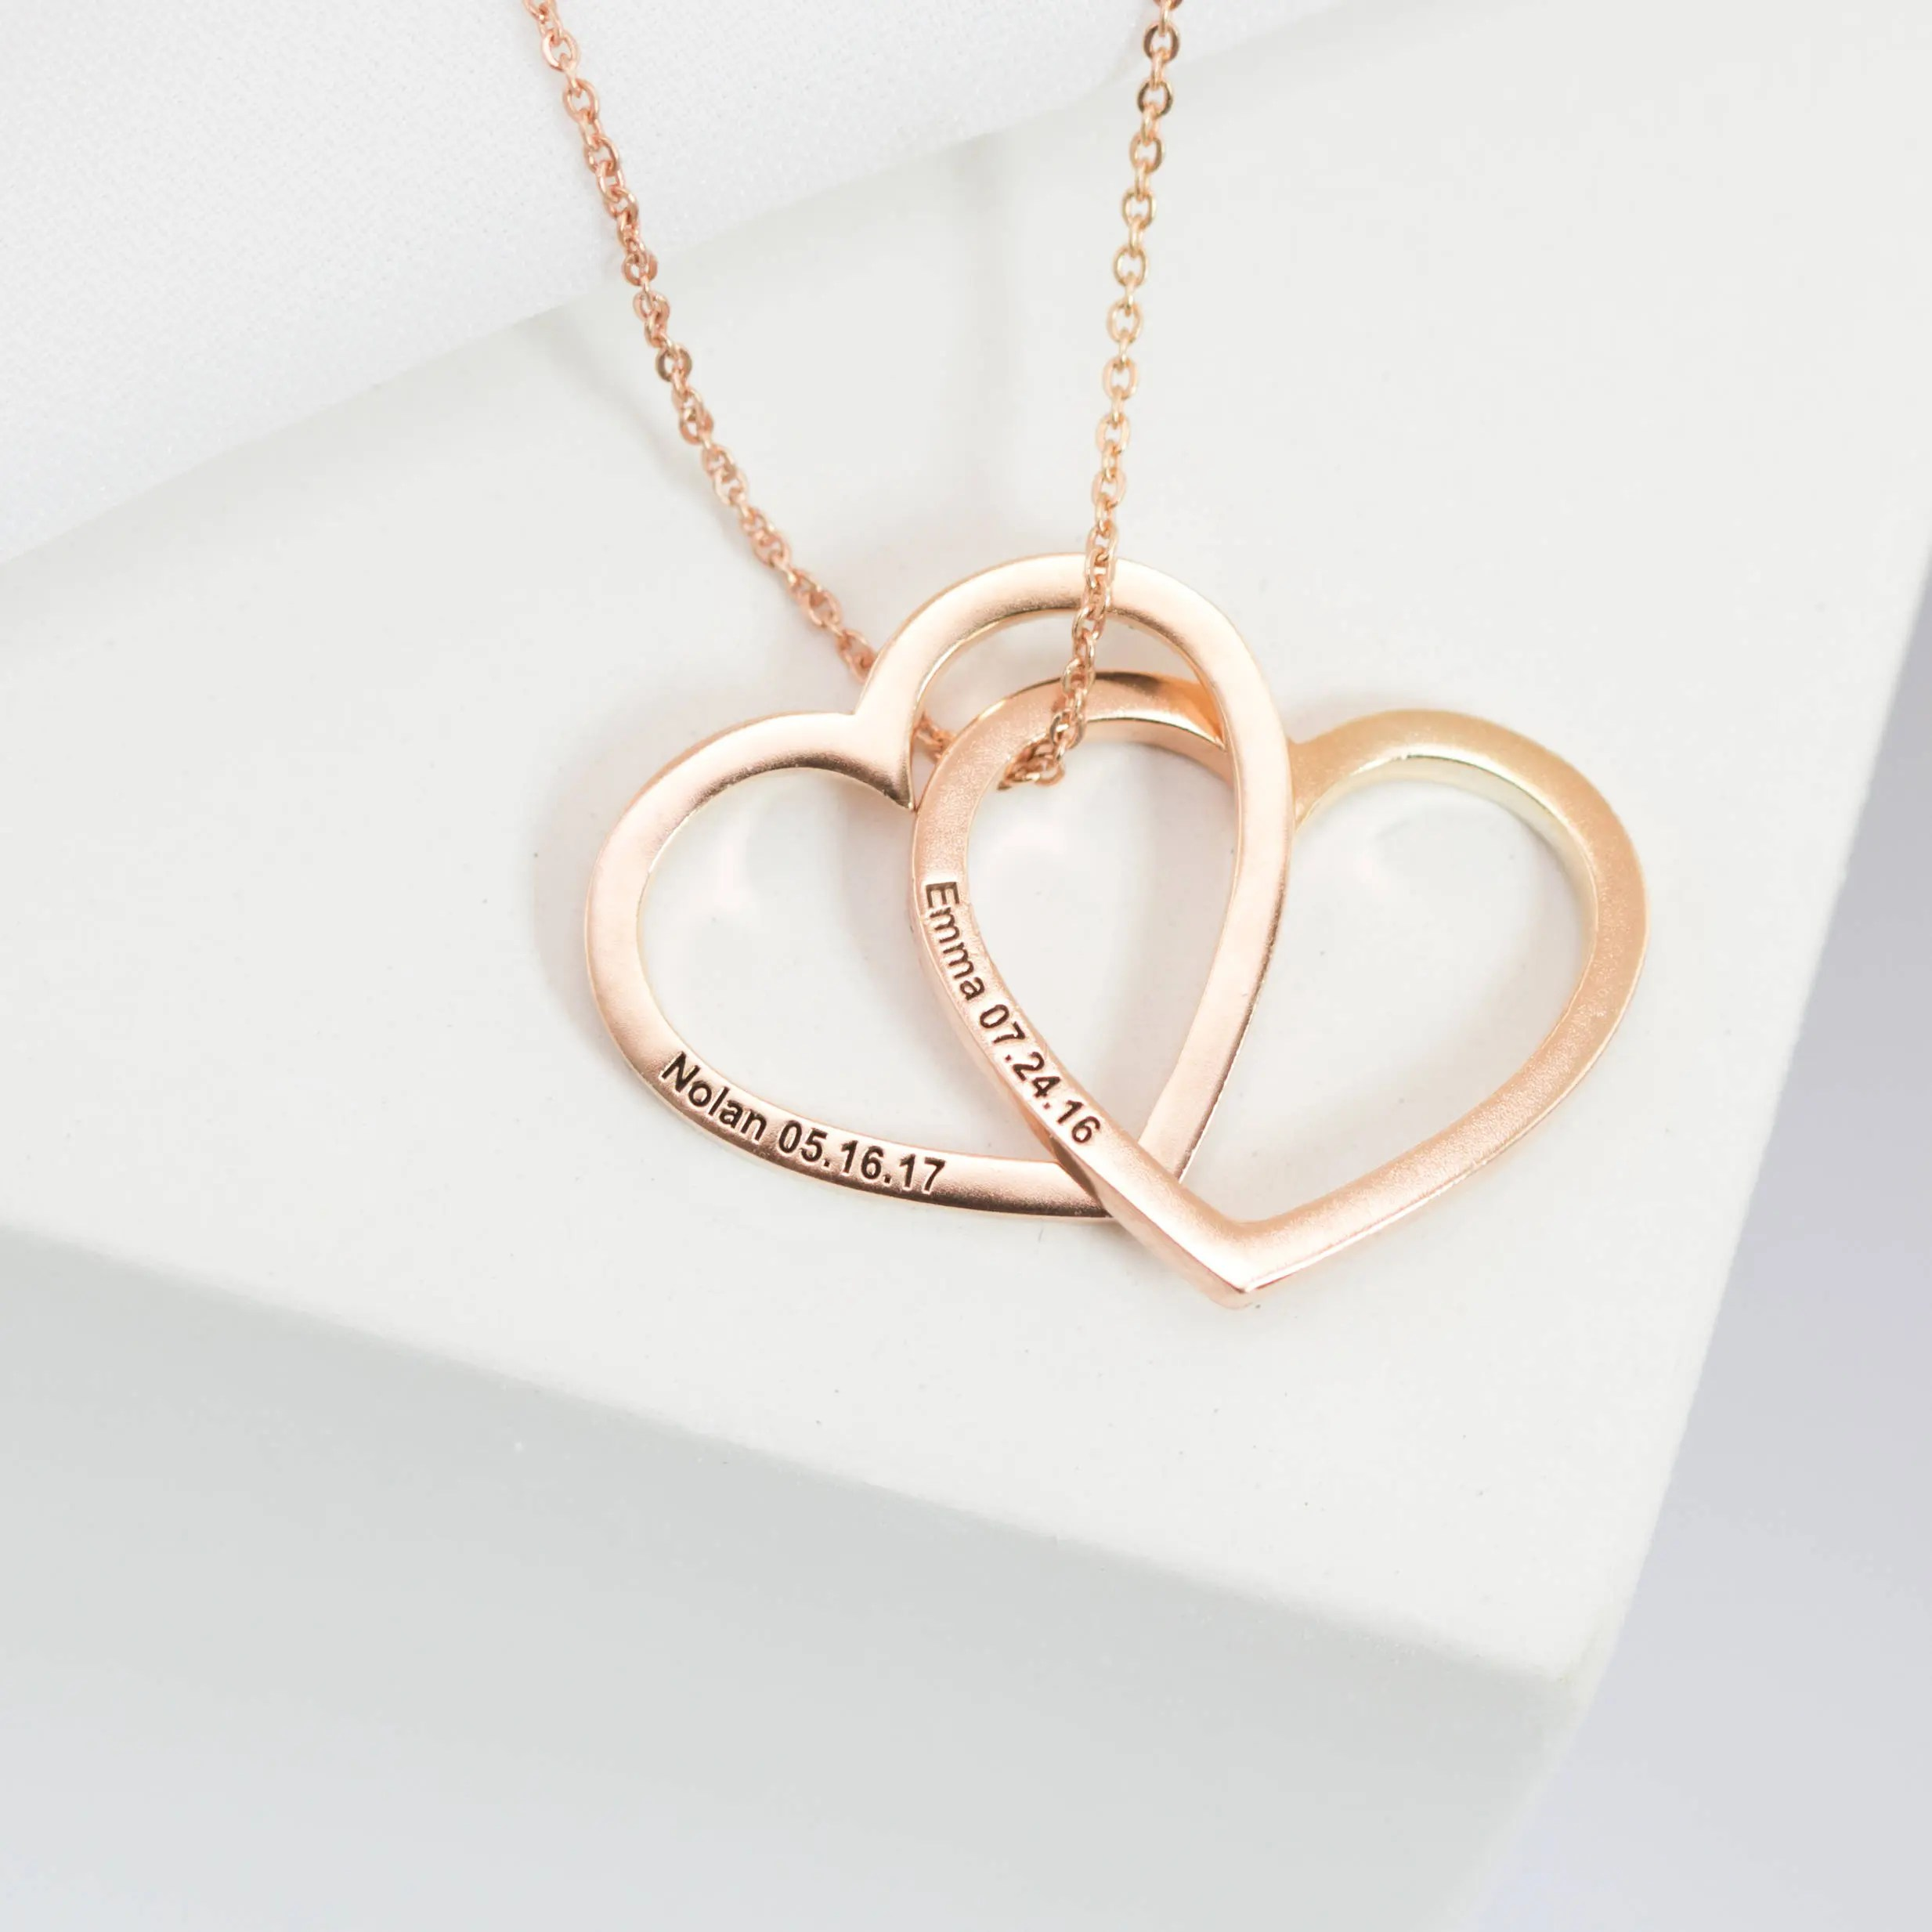 Custom Heart Necklace  Engrave Heart Pendant  Personalized image 1